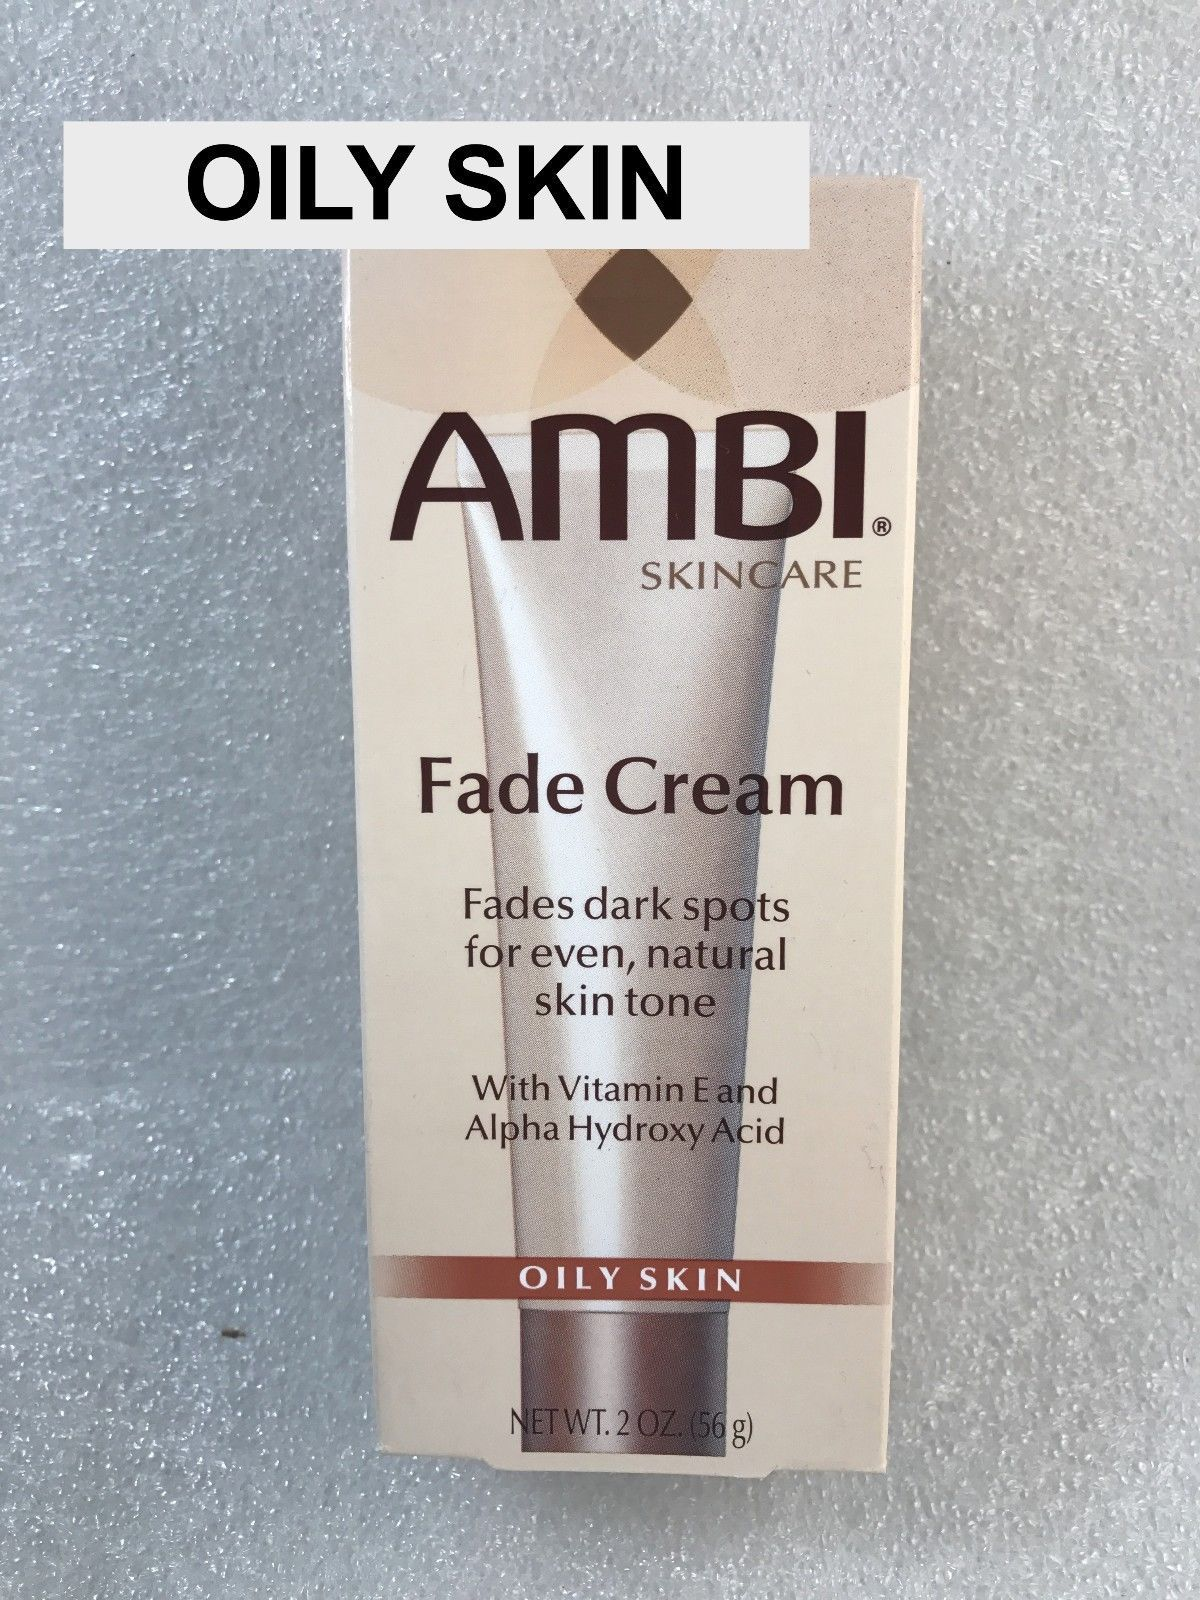 AMBI SKINCARE FADE CREAM WITH VITAMIN E & ALPHA HYDROXY ACID -  OILY SKIN  2 OZ